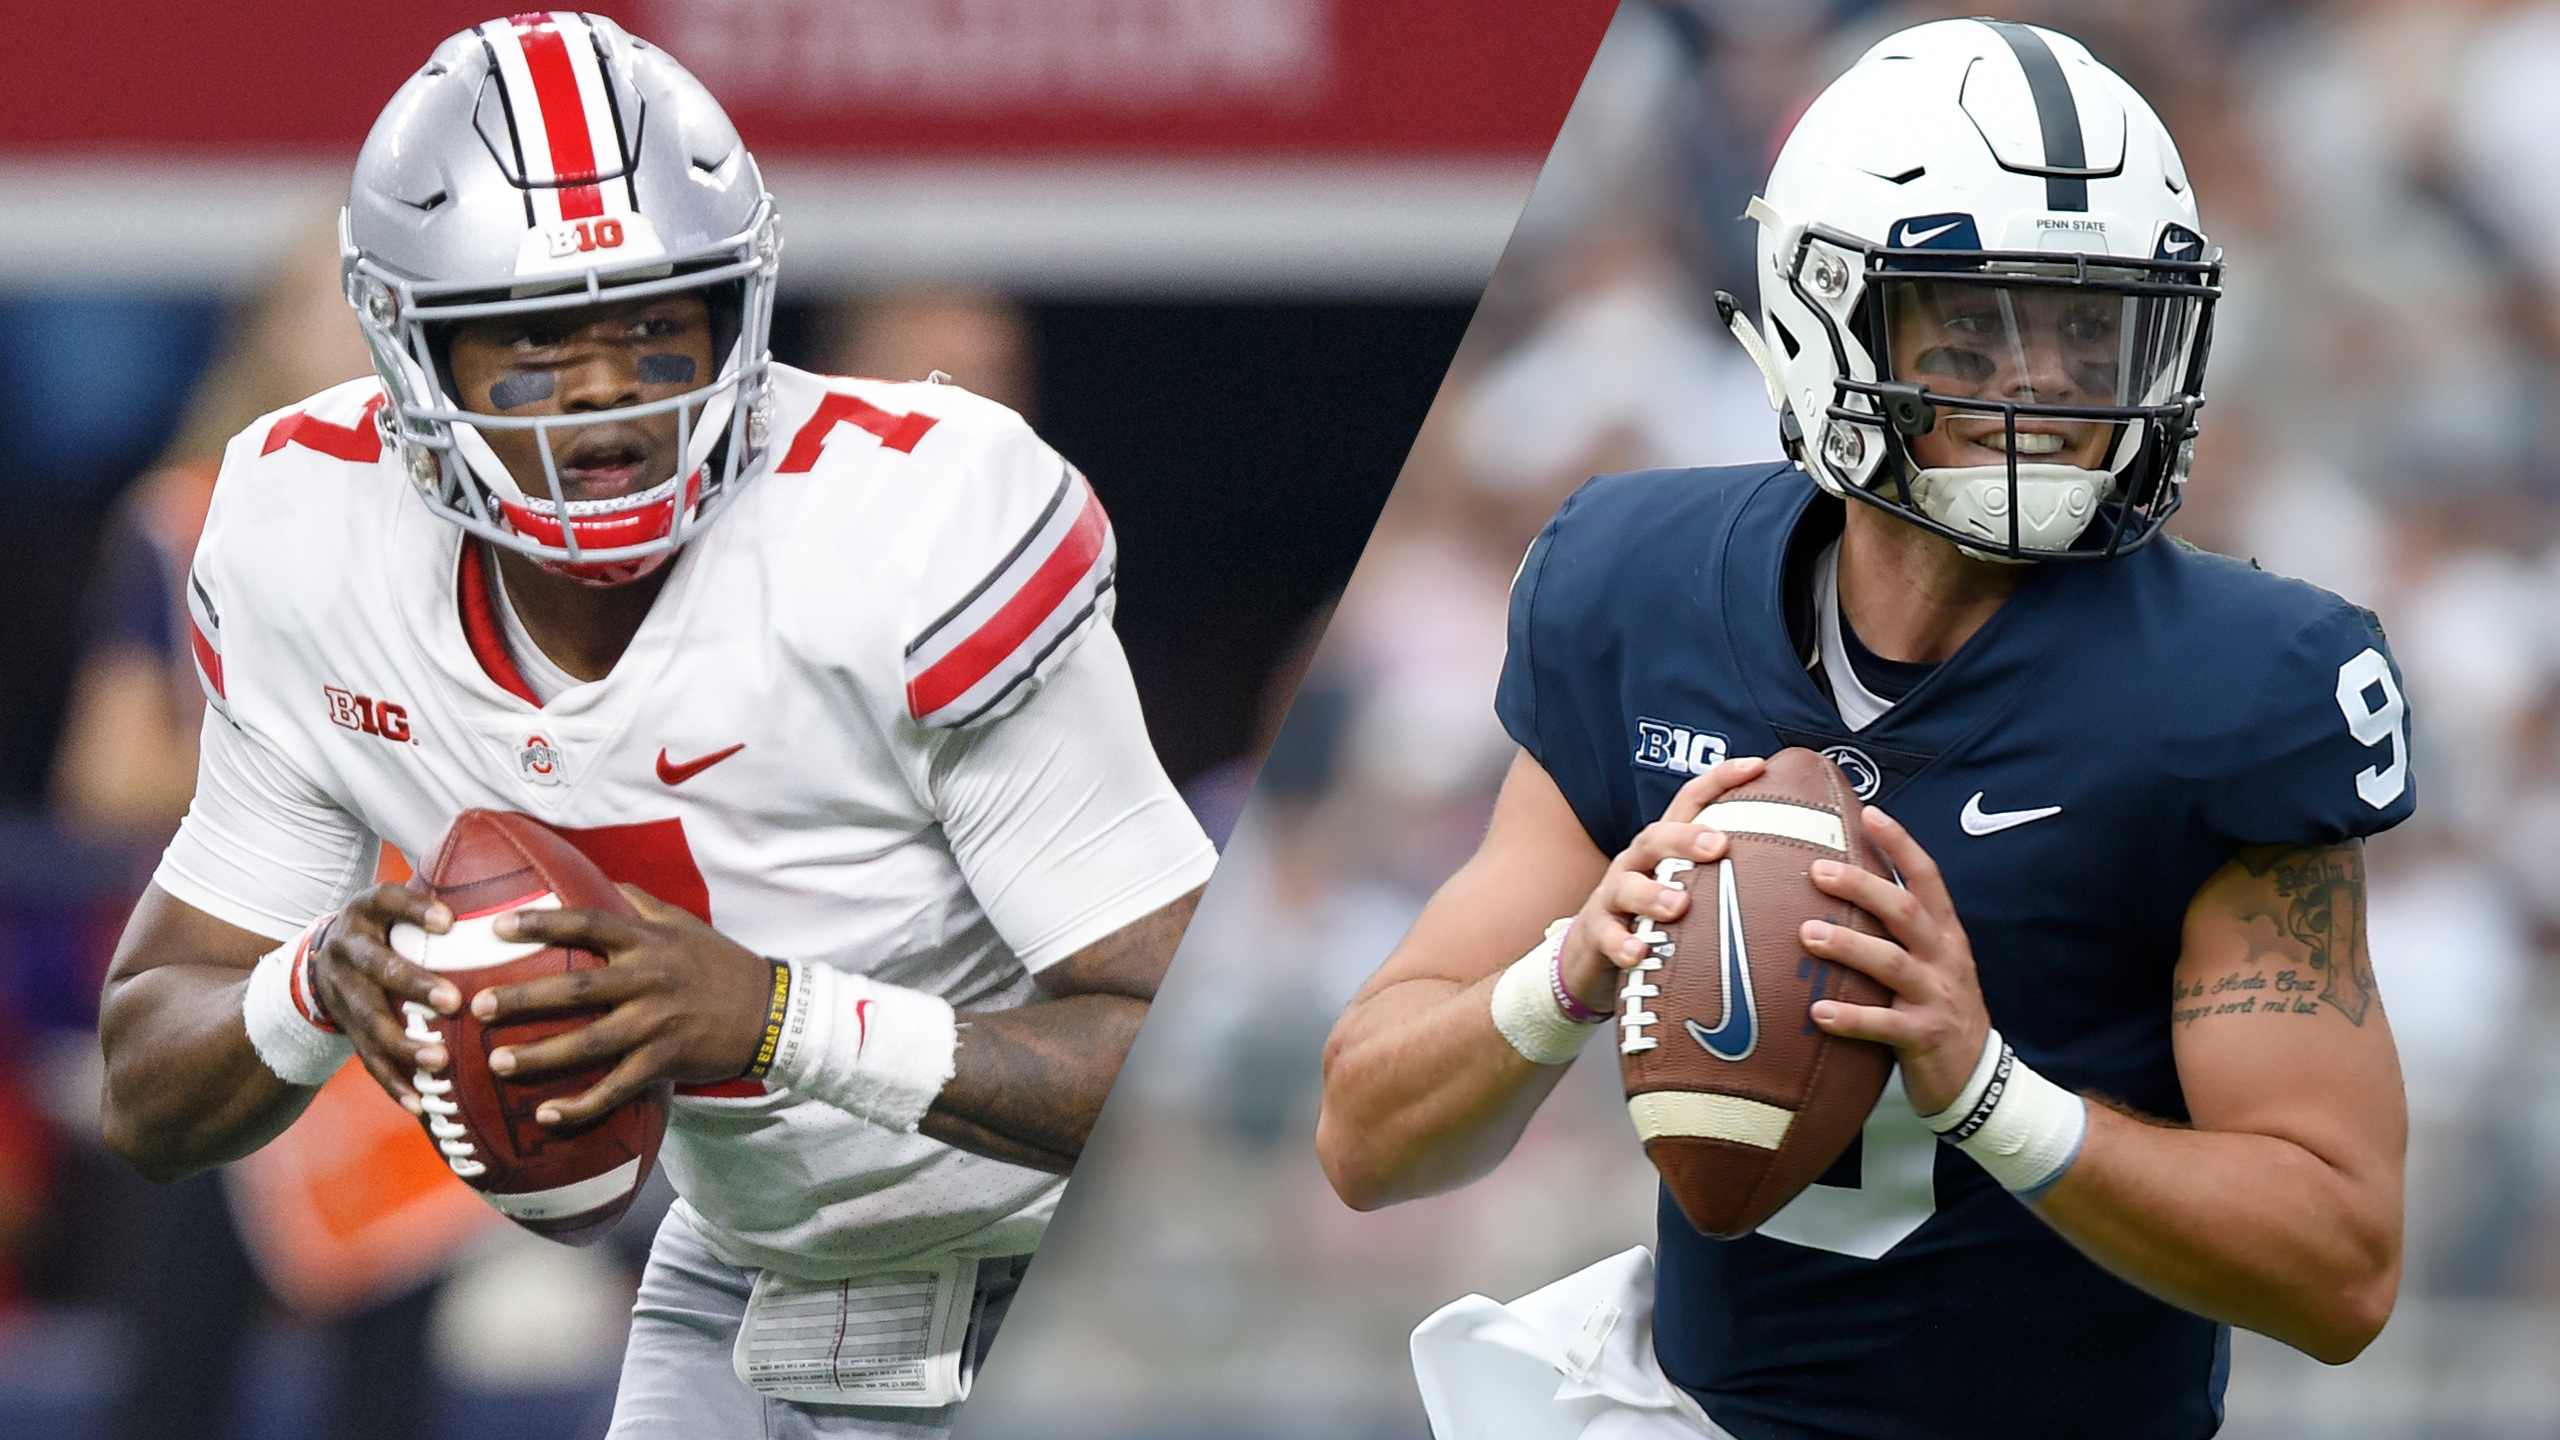 #4 Ohio State vs. #9 Penn State (re-air)